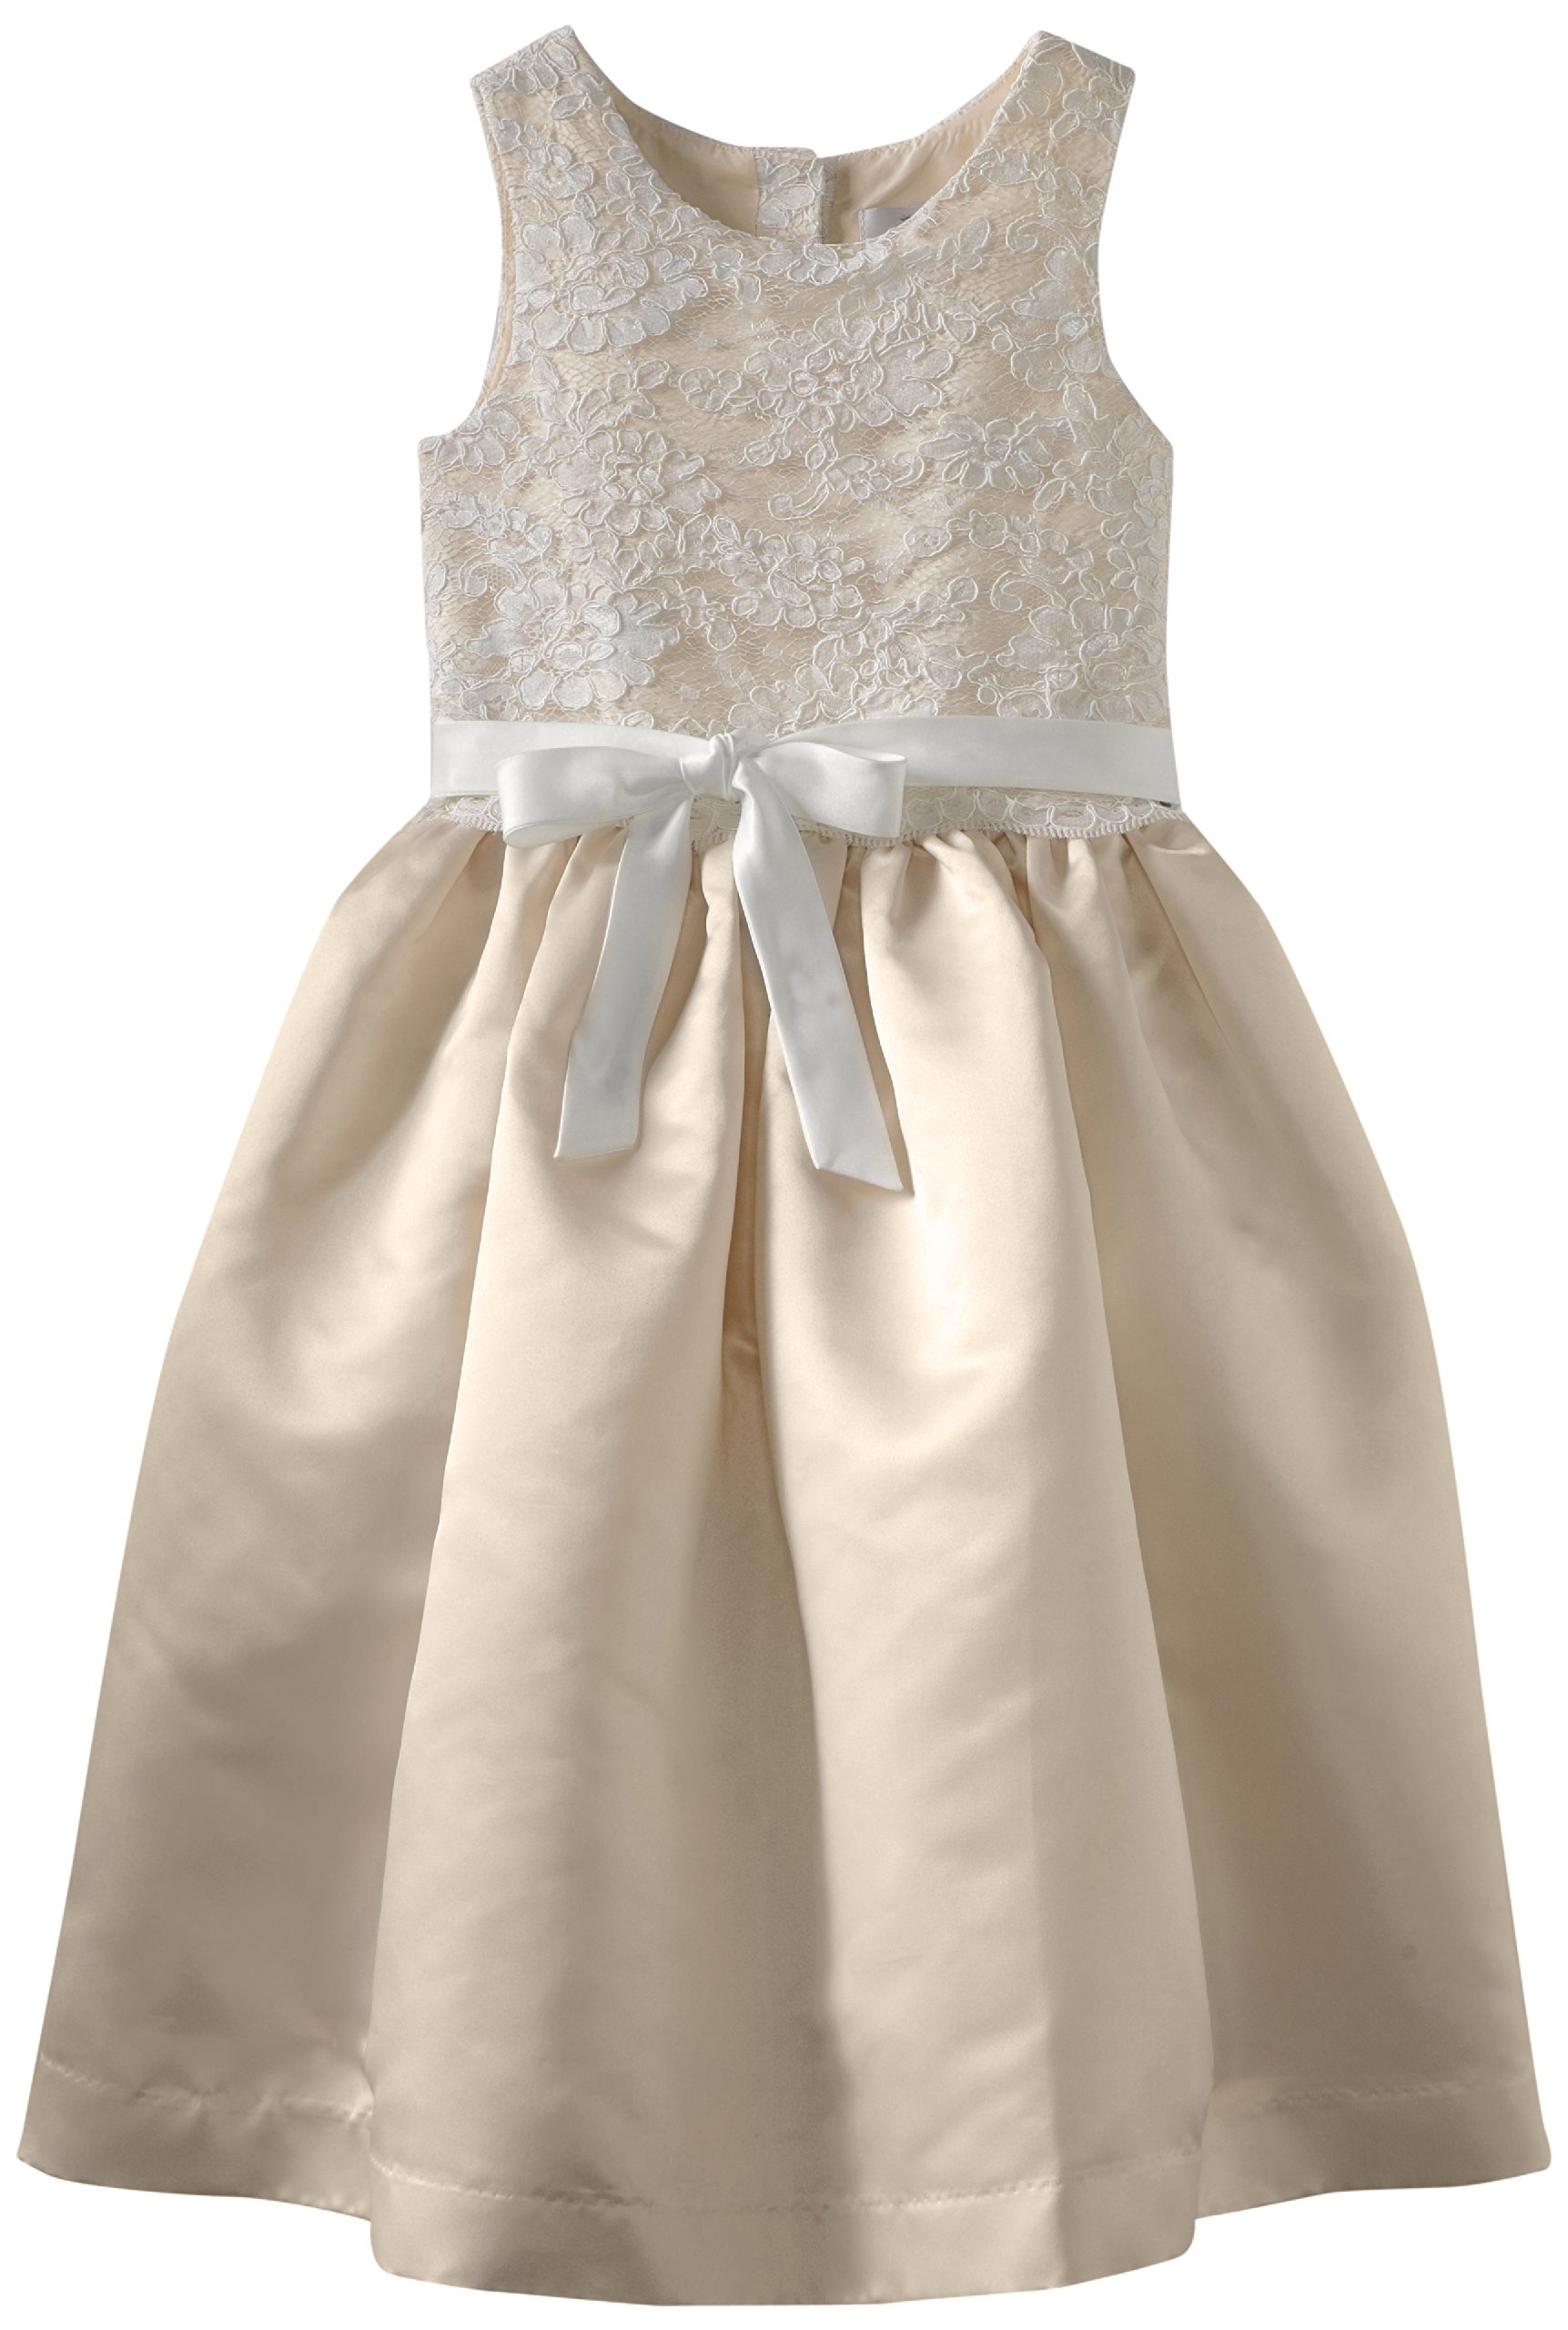 Us Angels Big Girls' Lace Overlay, Ivory/Champagne, 8